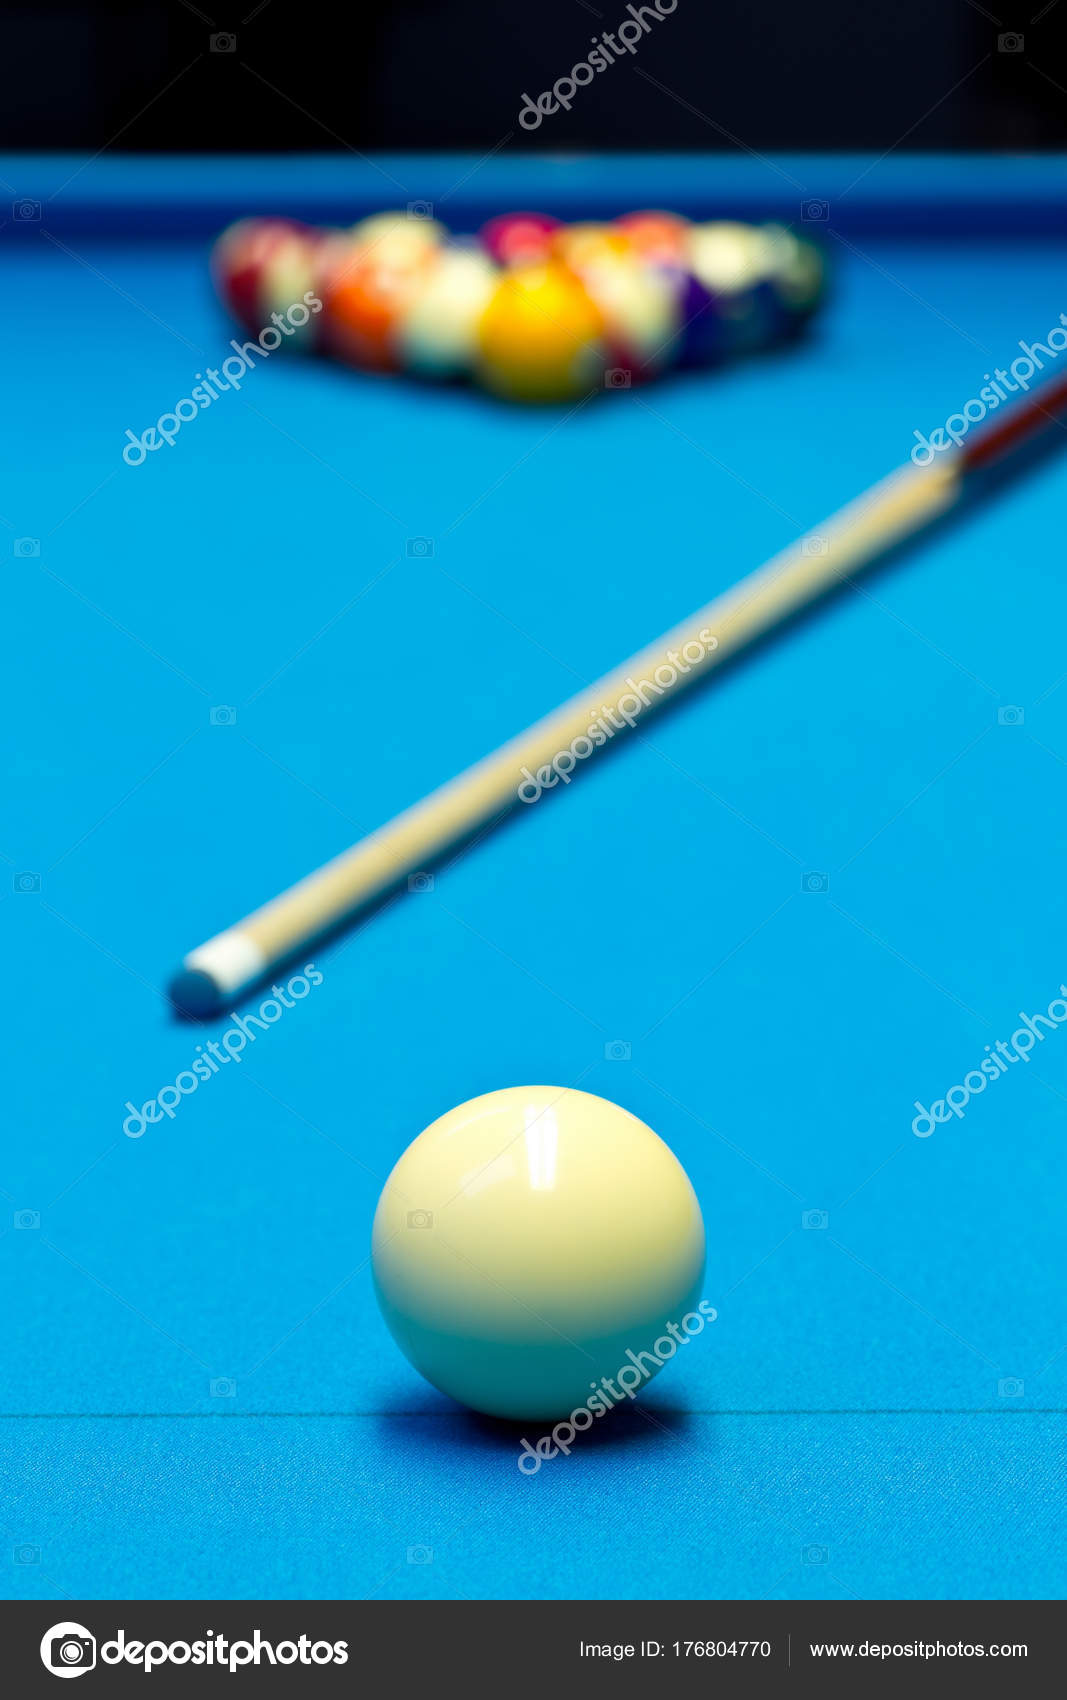 Pool Table Setup >> Billiard Pool Game Eight Ball Setup With Cue On Billiard